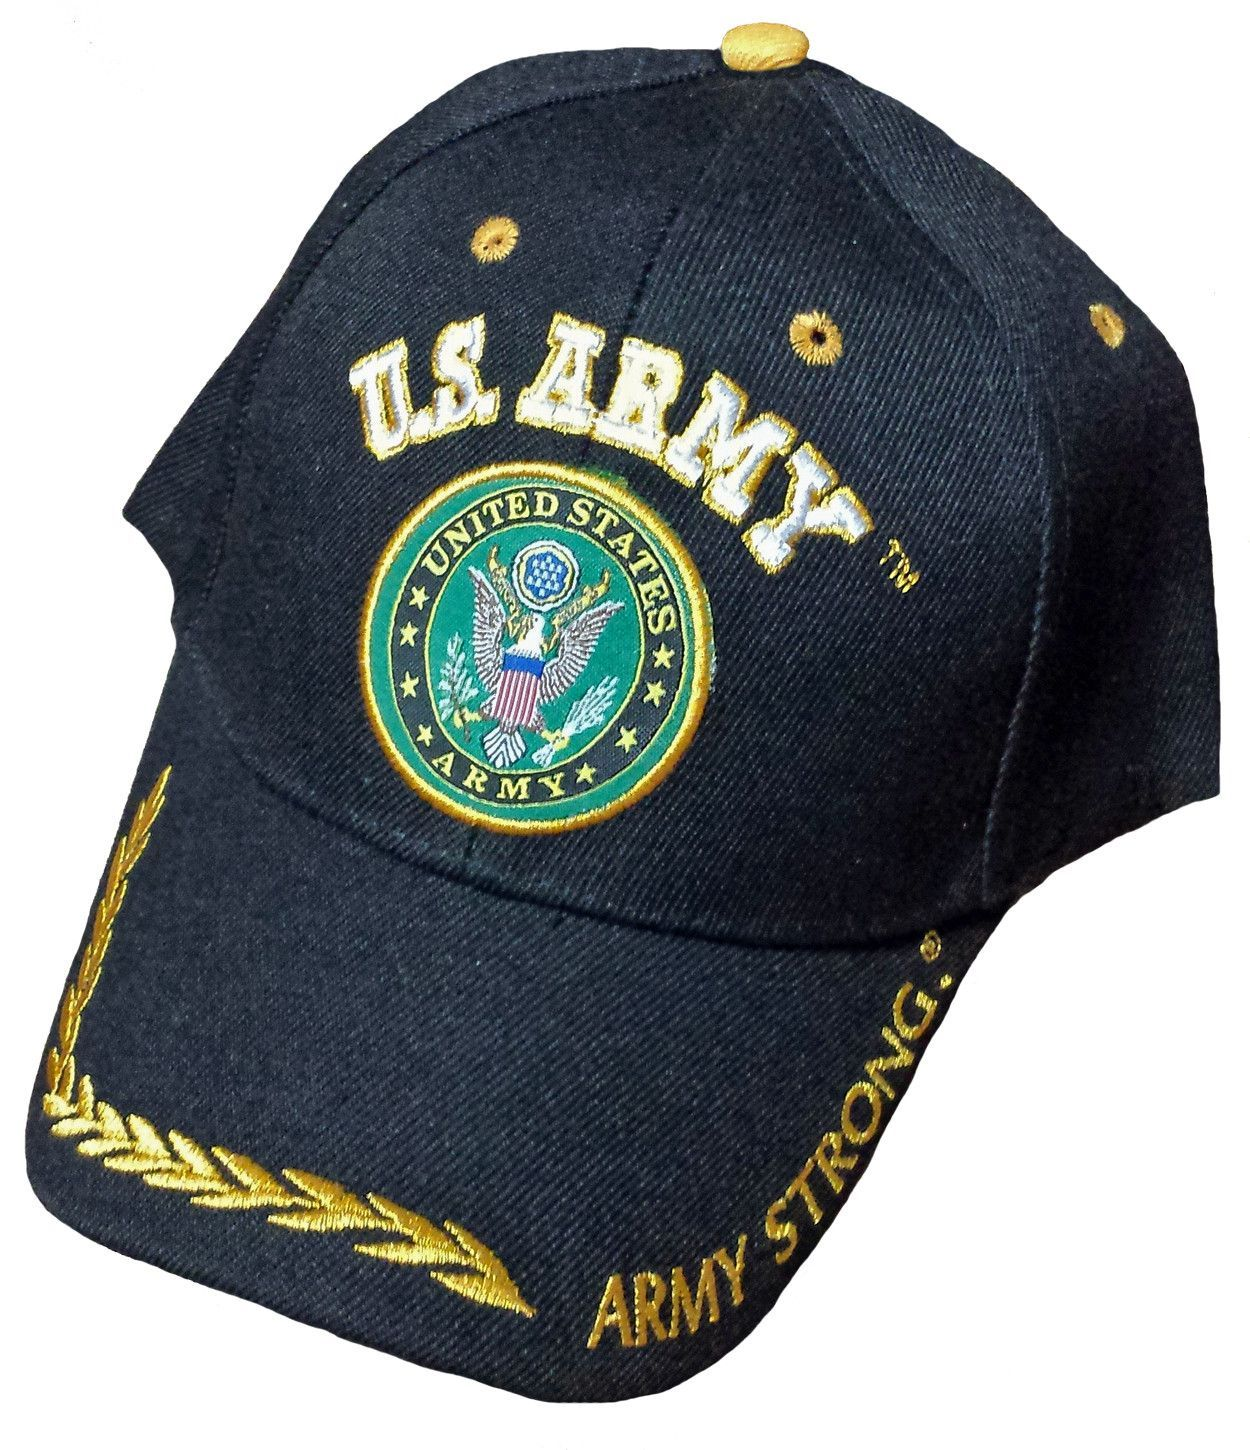 U.S. Army Hat Black Army Strong Logo Baseball Cap with